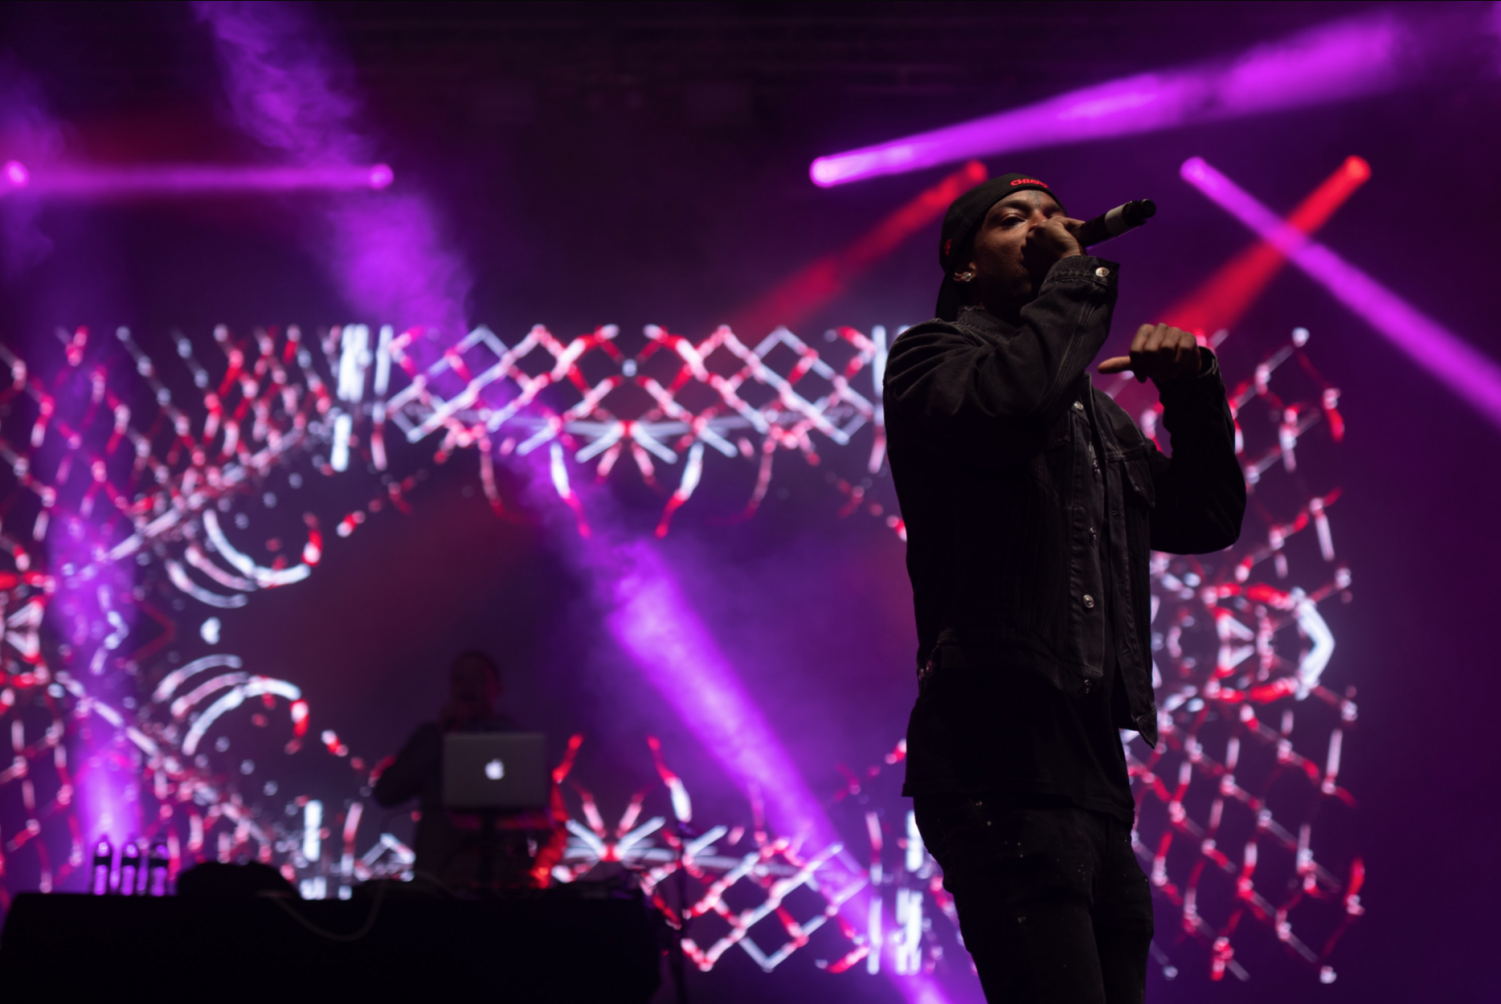 21 Savage performs at Rites of Spring in 2019. (Photo by Brandon Jacome-Mendez)